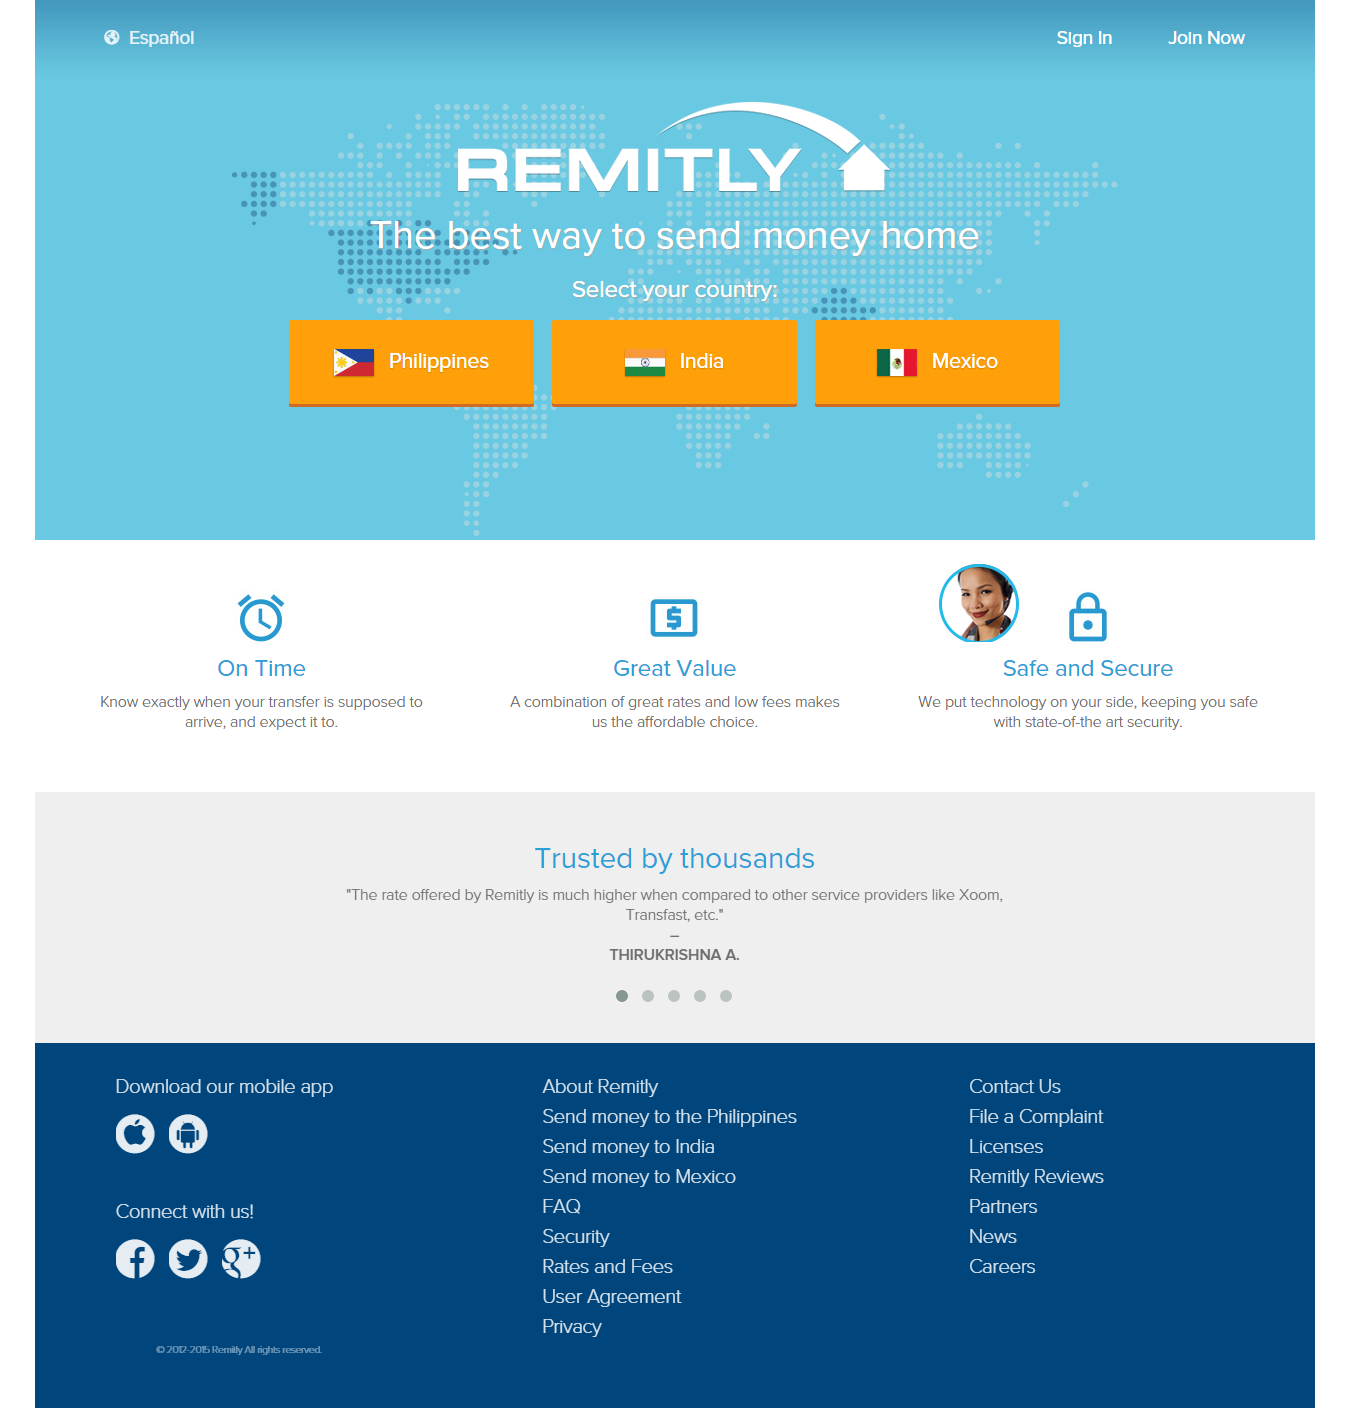 Remitly Company Profile Office Locations Compeors Funding Valuation Financials Employees Key People Subsidiaries News Craft Co